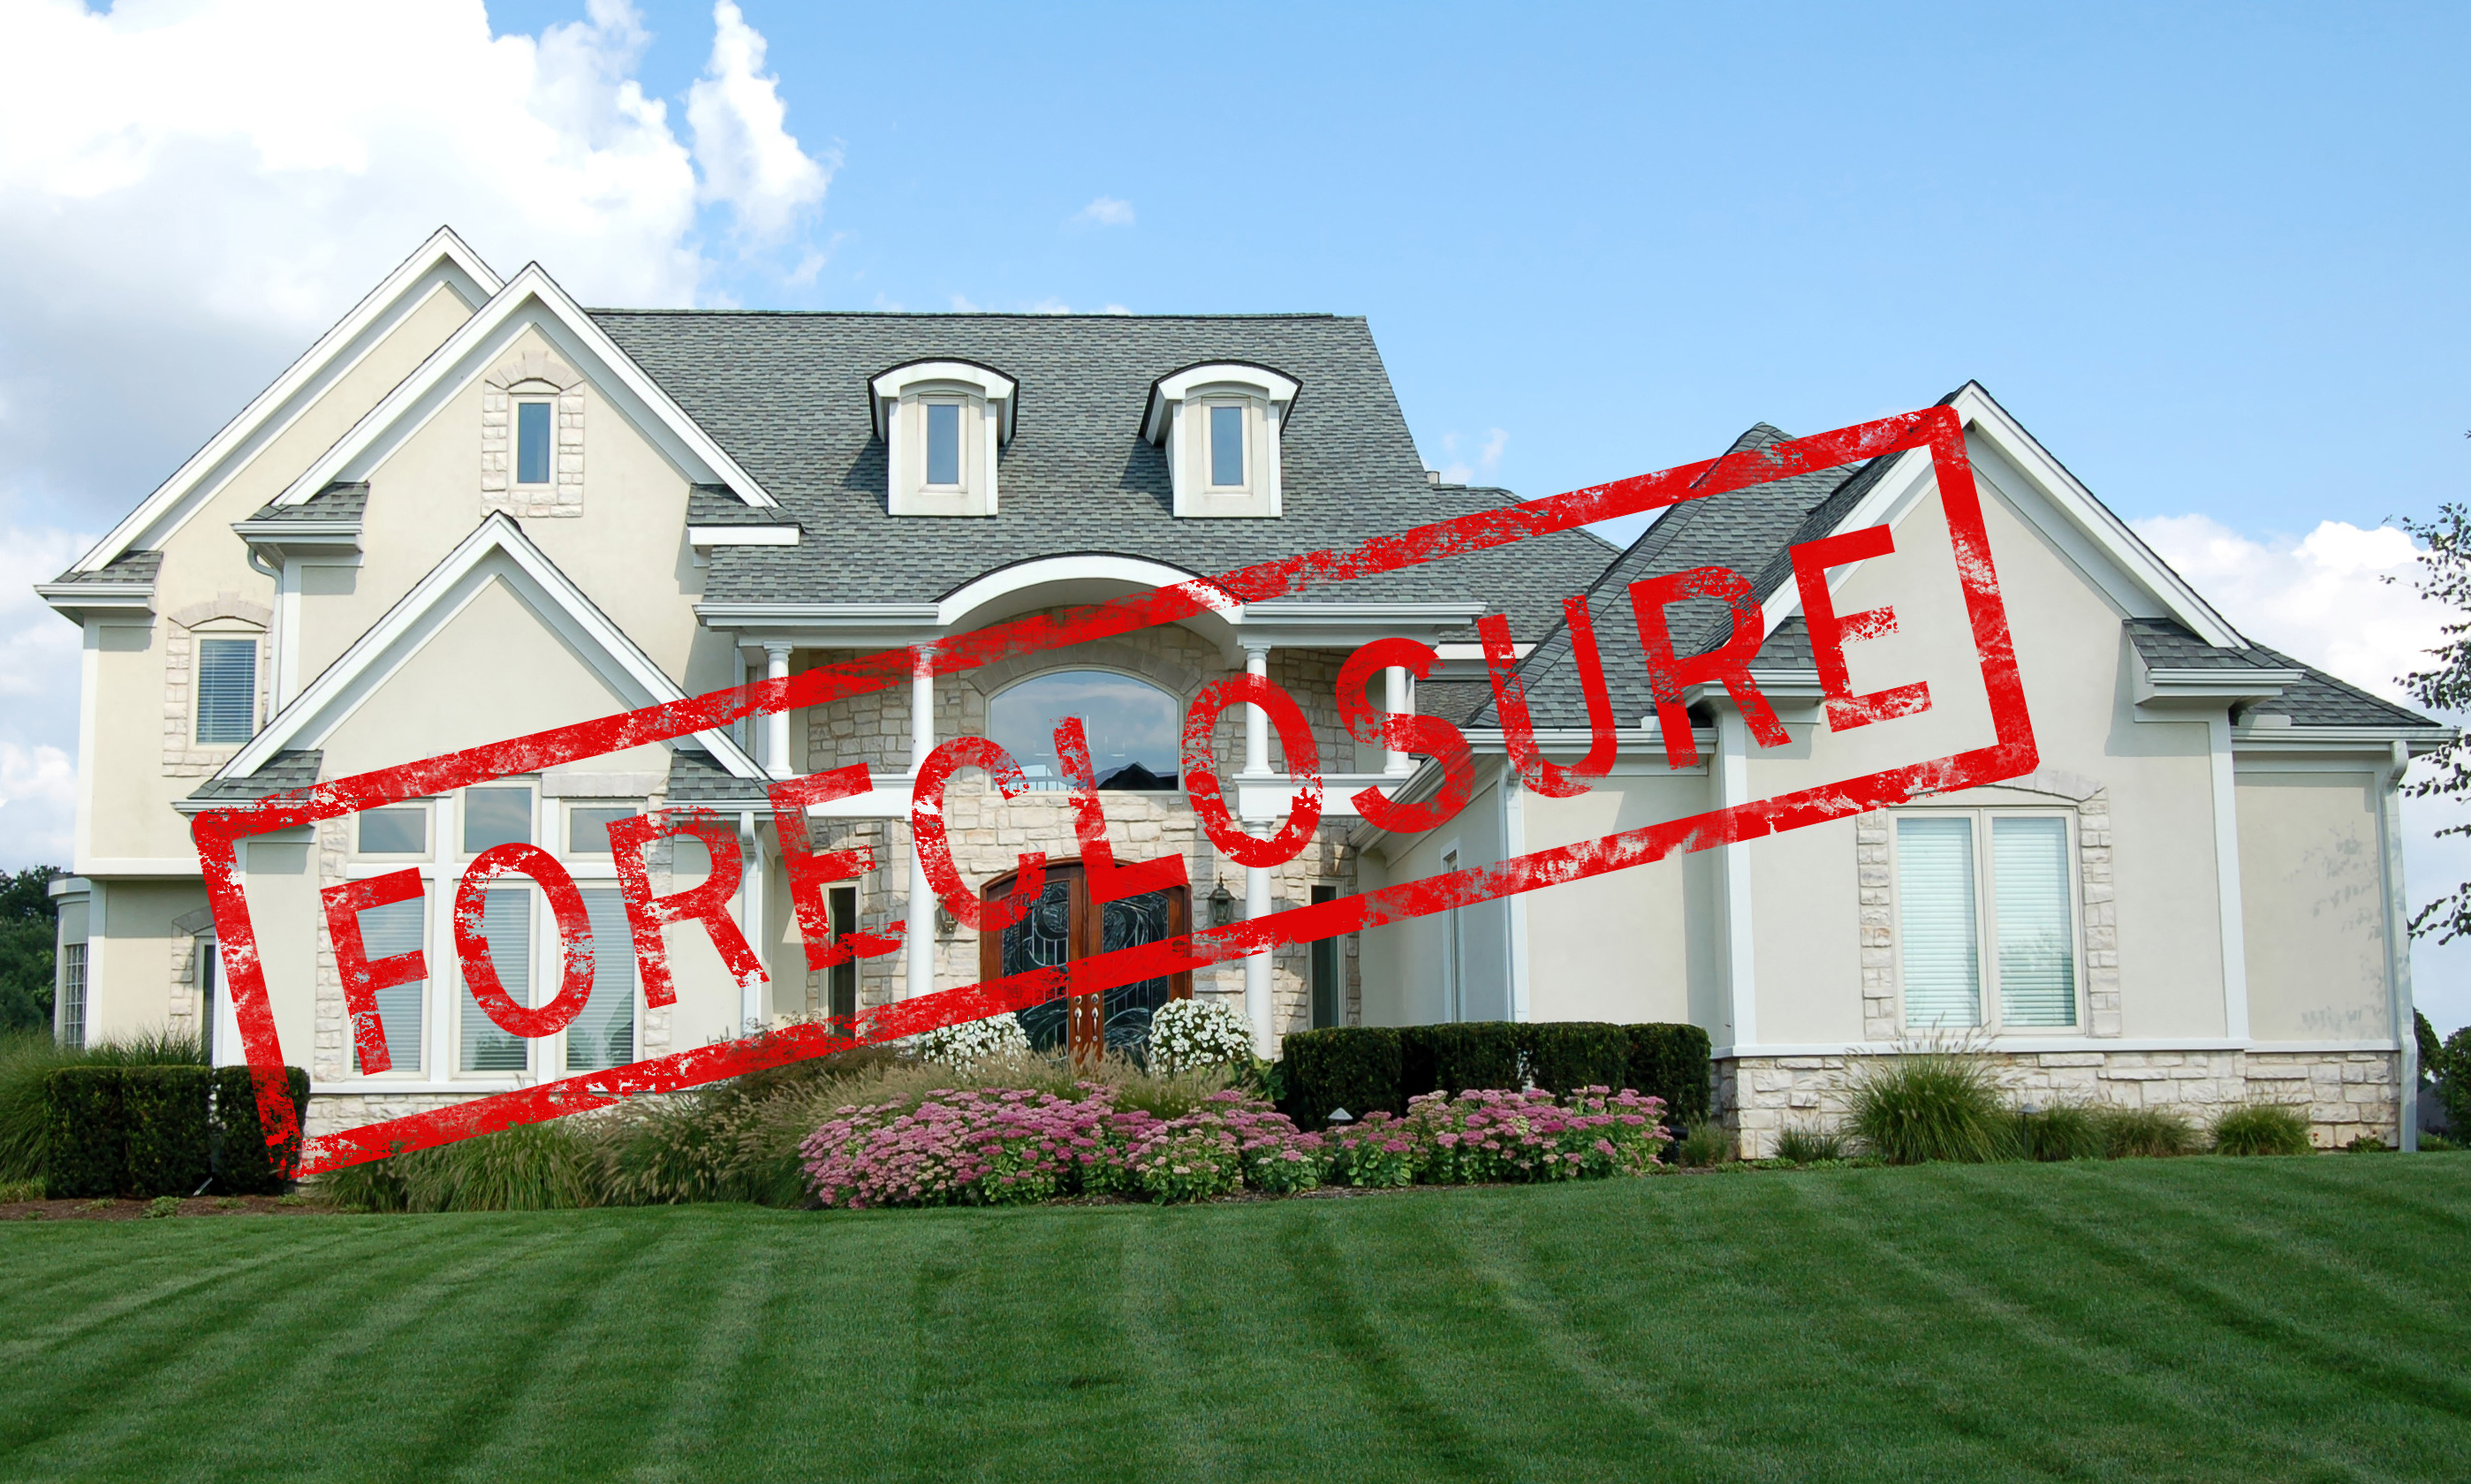 Call REVARI  (Real Estate Valuation and Research Inc.) when you need valuations regarding Sullivan foreclosures